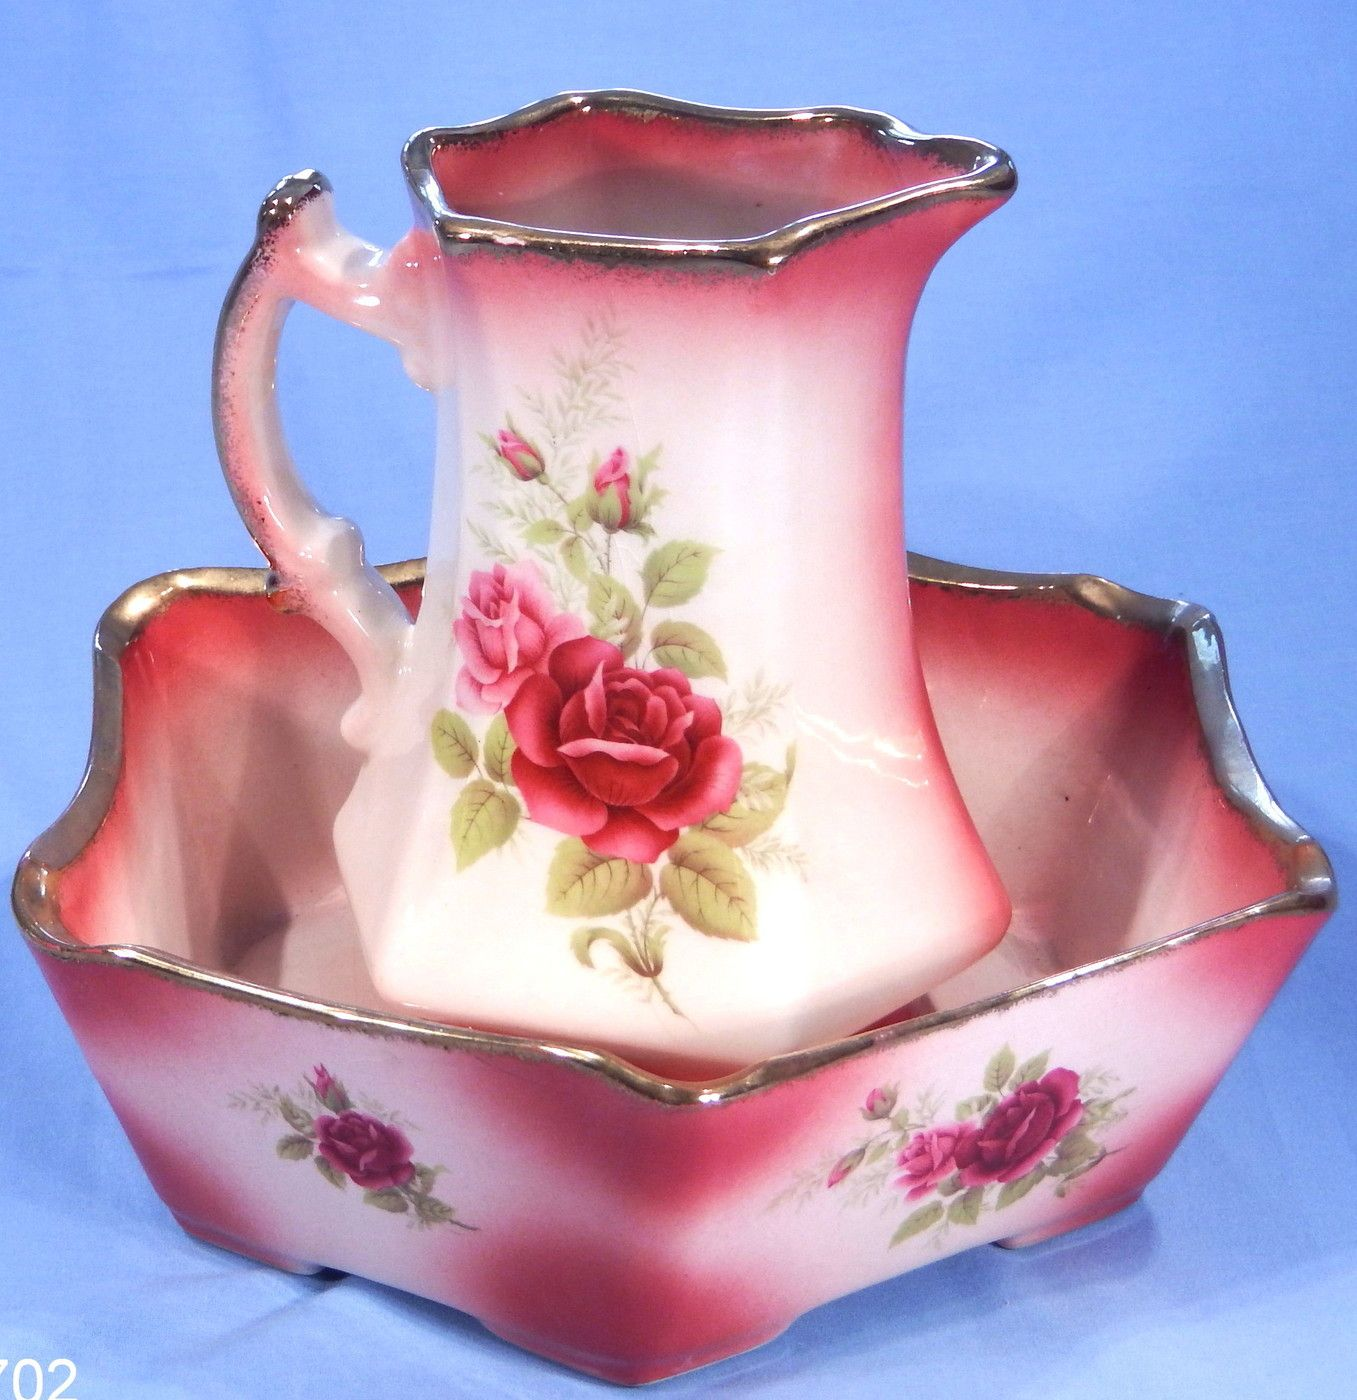 Bathroom Jug And Bowl Set - Find this pin and more on bowl and pitcher sets